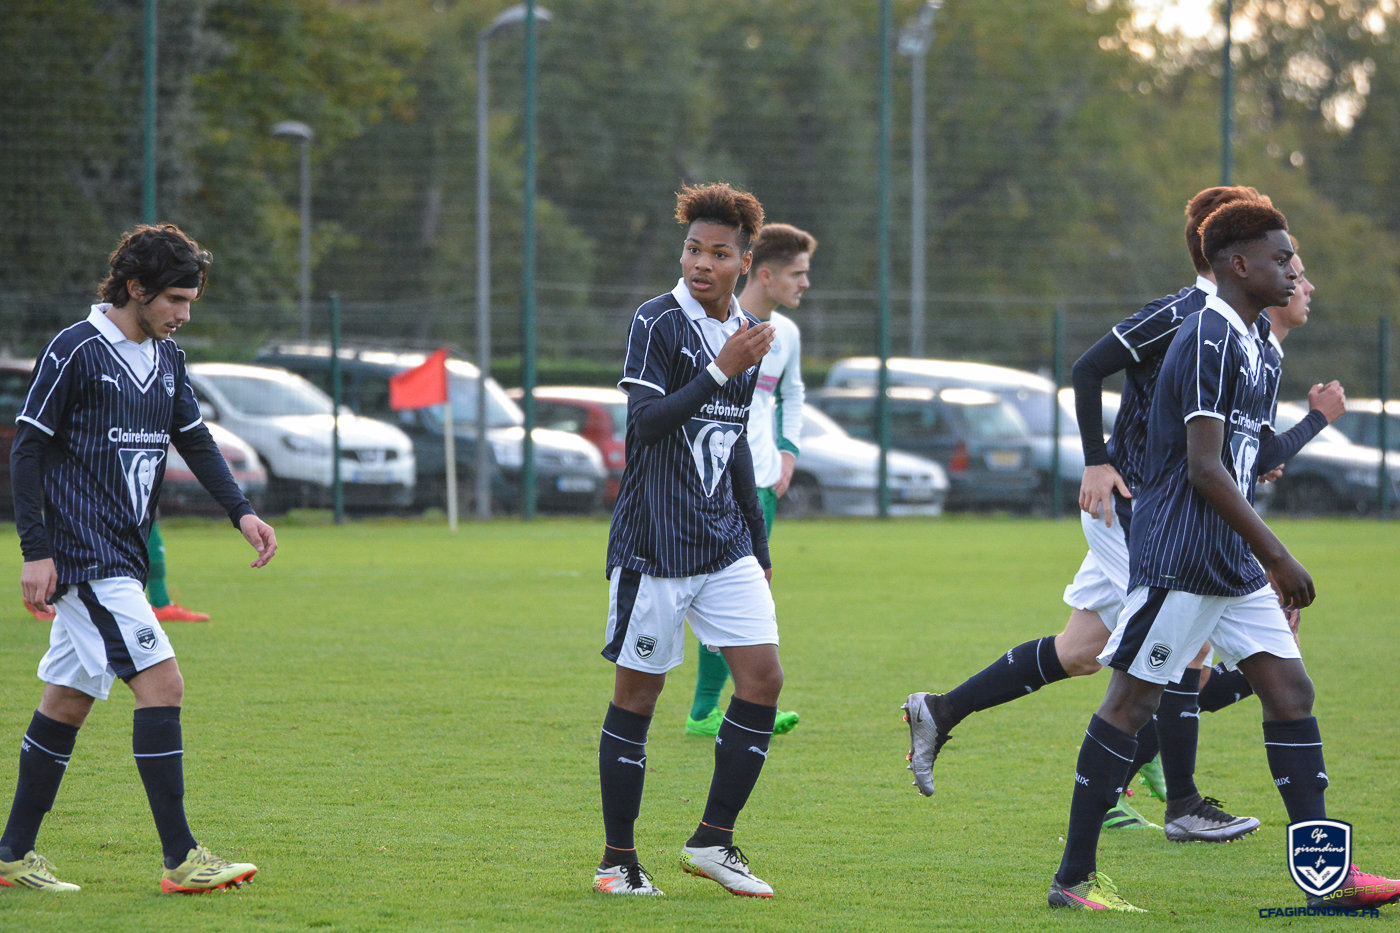 Cfa Girondins : Victoire à Villenave (0-3) - Formation Girondins